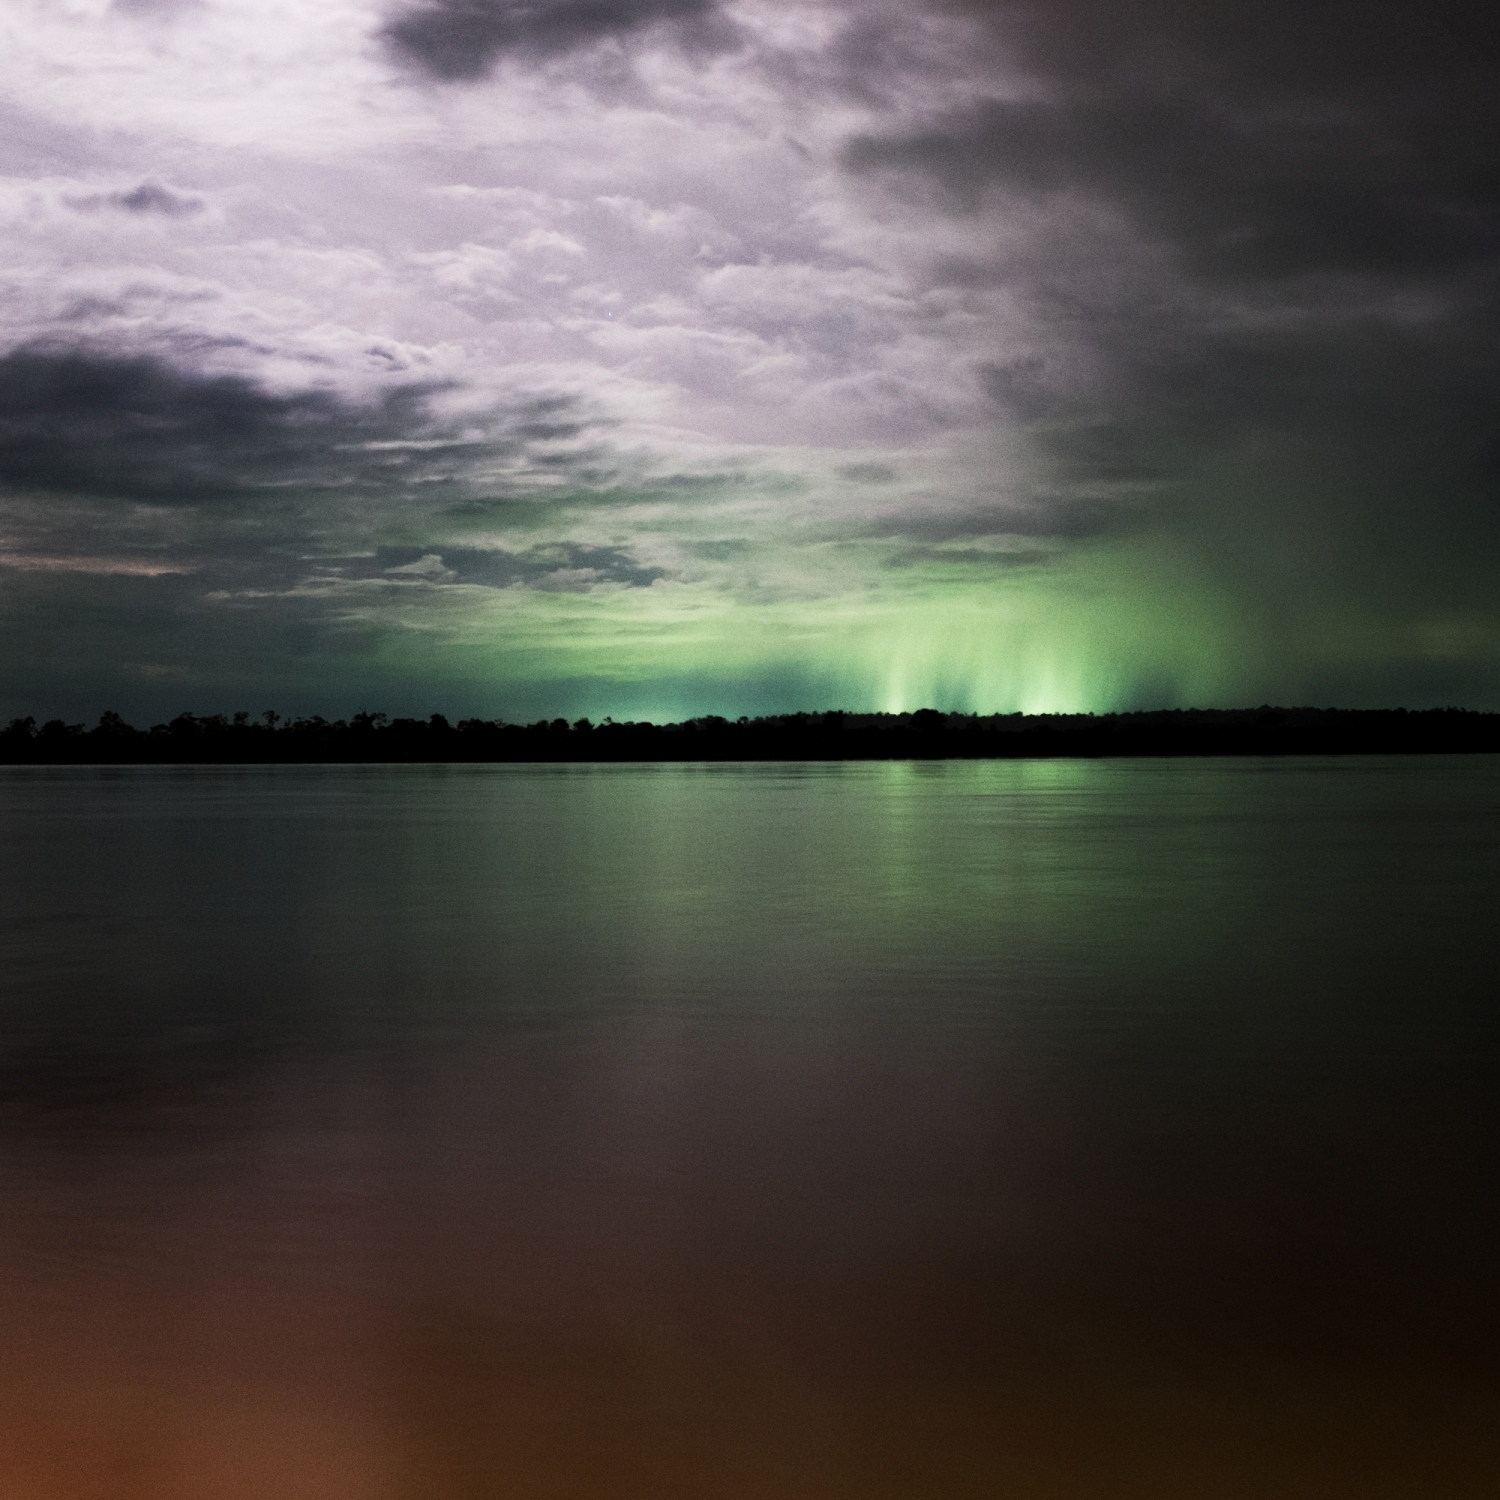 2014. The construction site of the Belo Monte Dam lights up the sky over the Xingu River, seen from the nearby city of Altamira. During it's construction it was the largest infrastructure project in South America.  /Aaron Vincent Elkaim